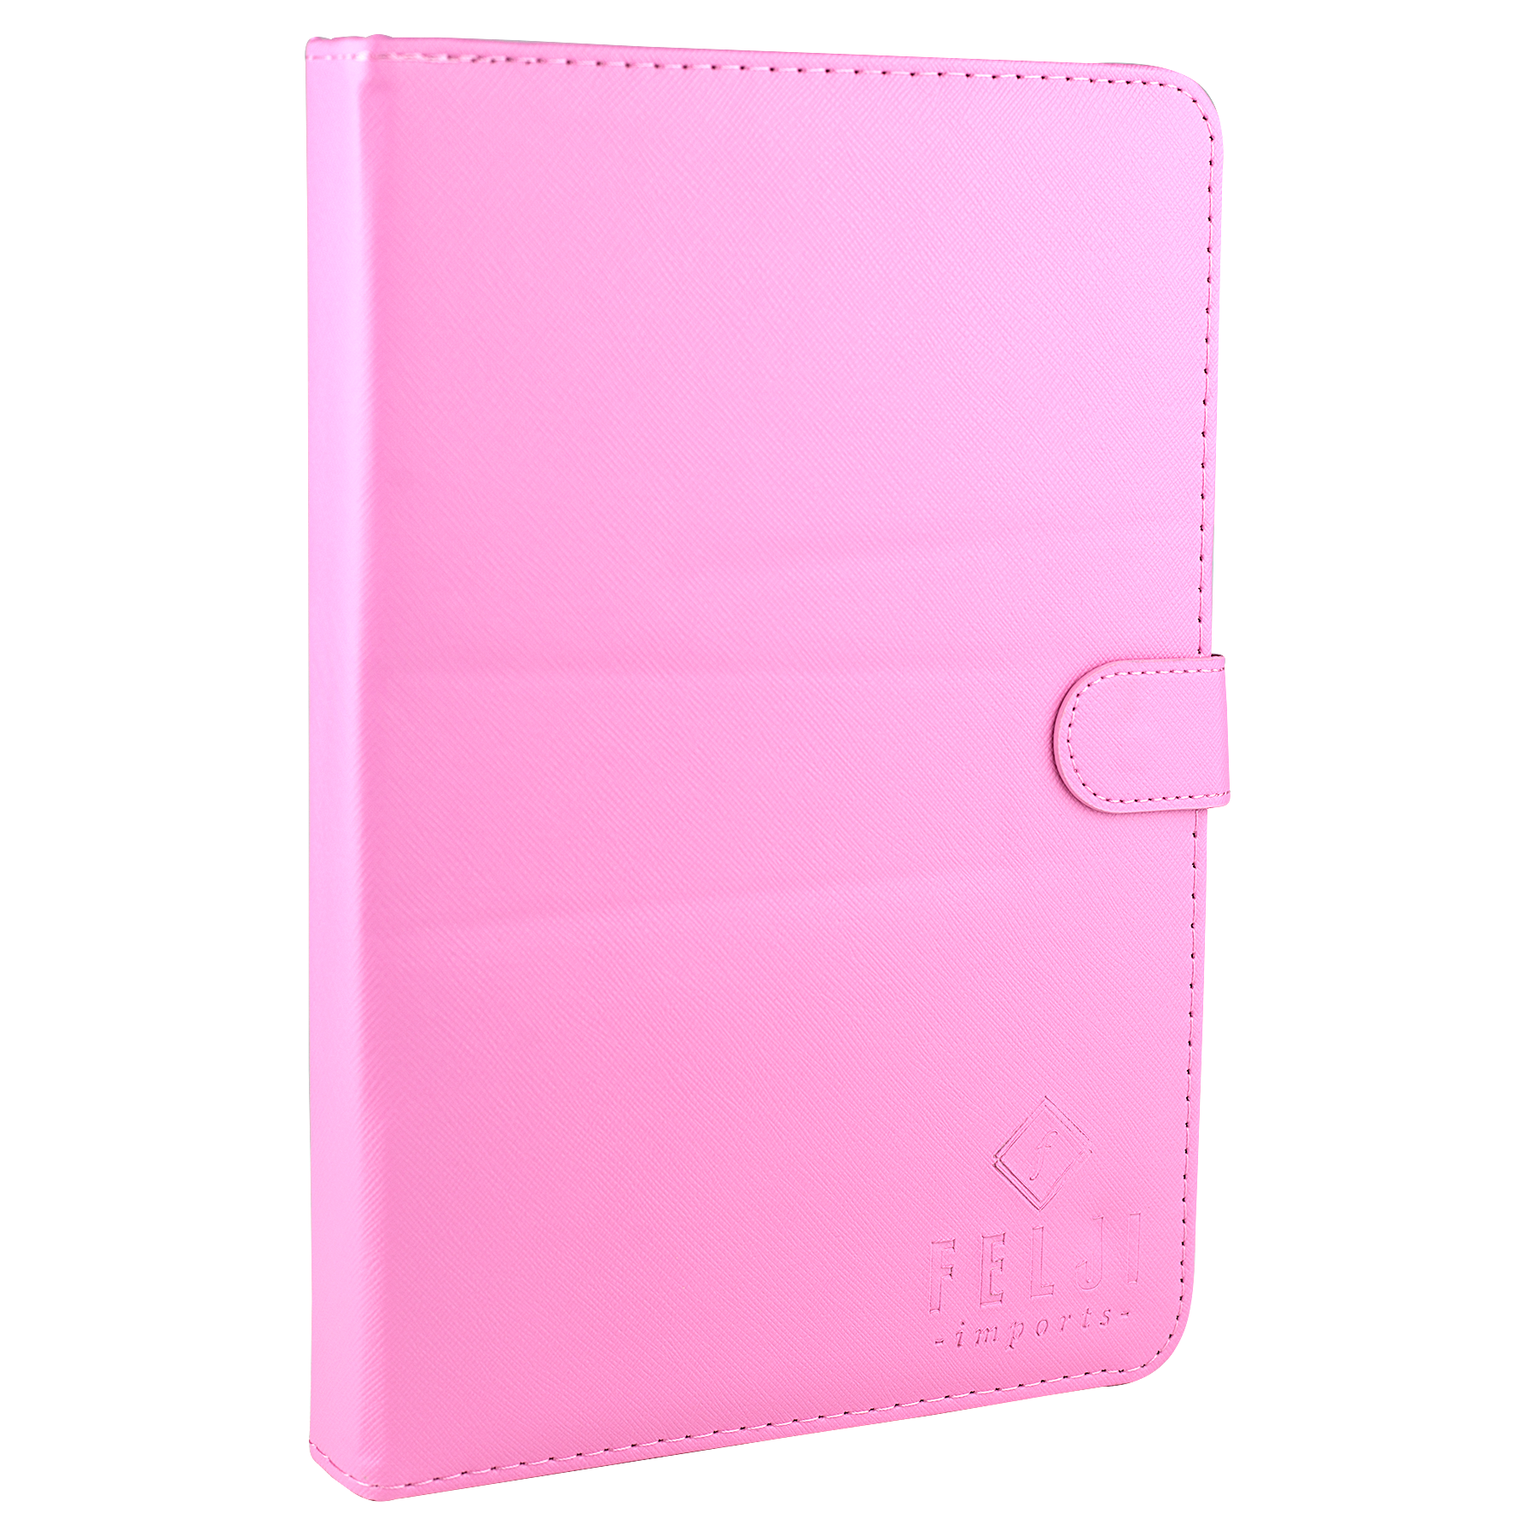 Felji Pink Stand Leather Case Cover for Android Tablet 7-Inch Universal w/ USB Keyboard